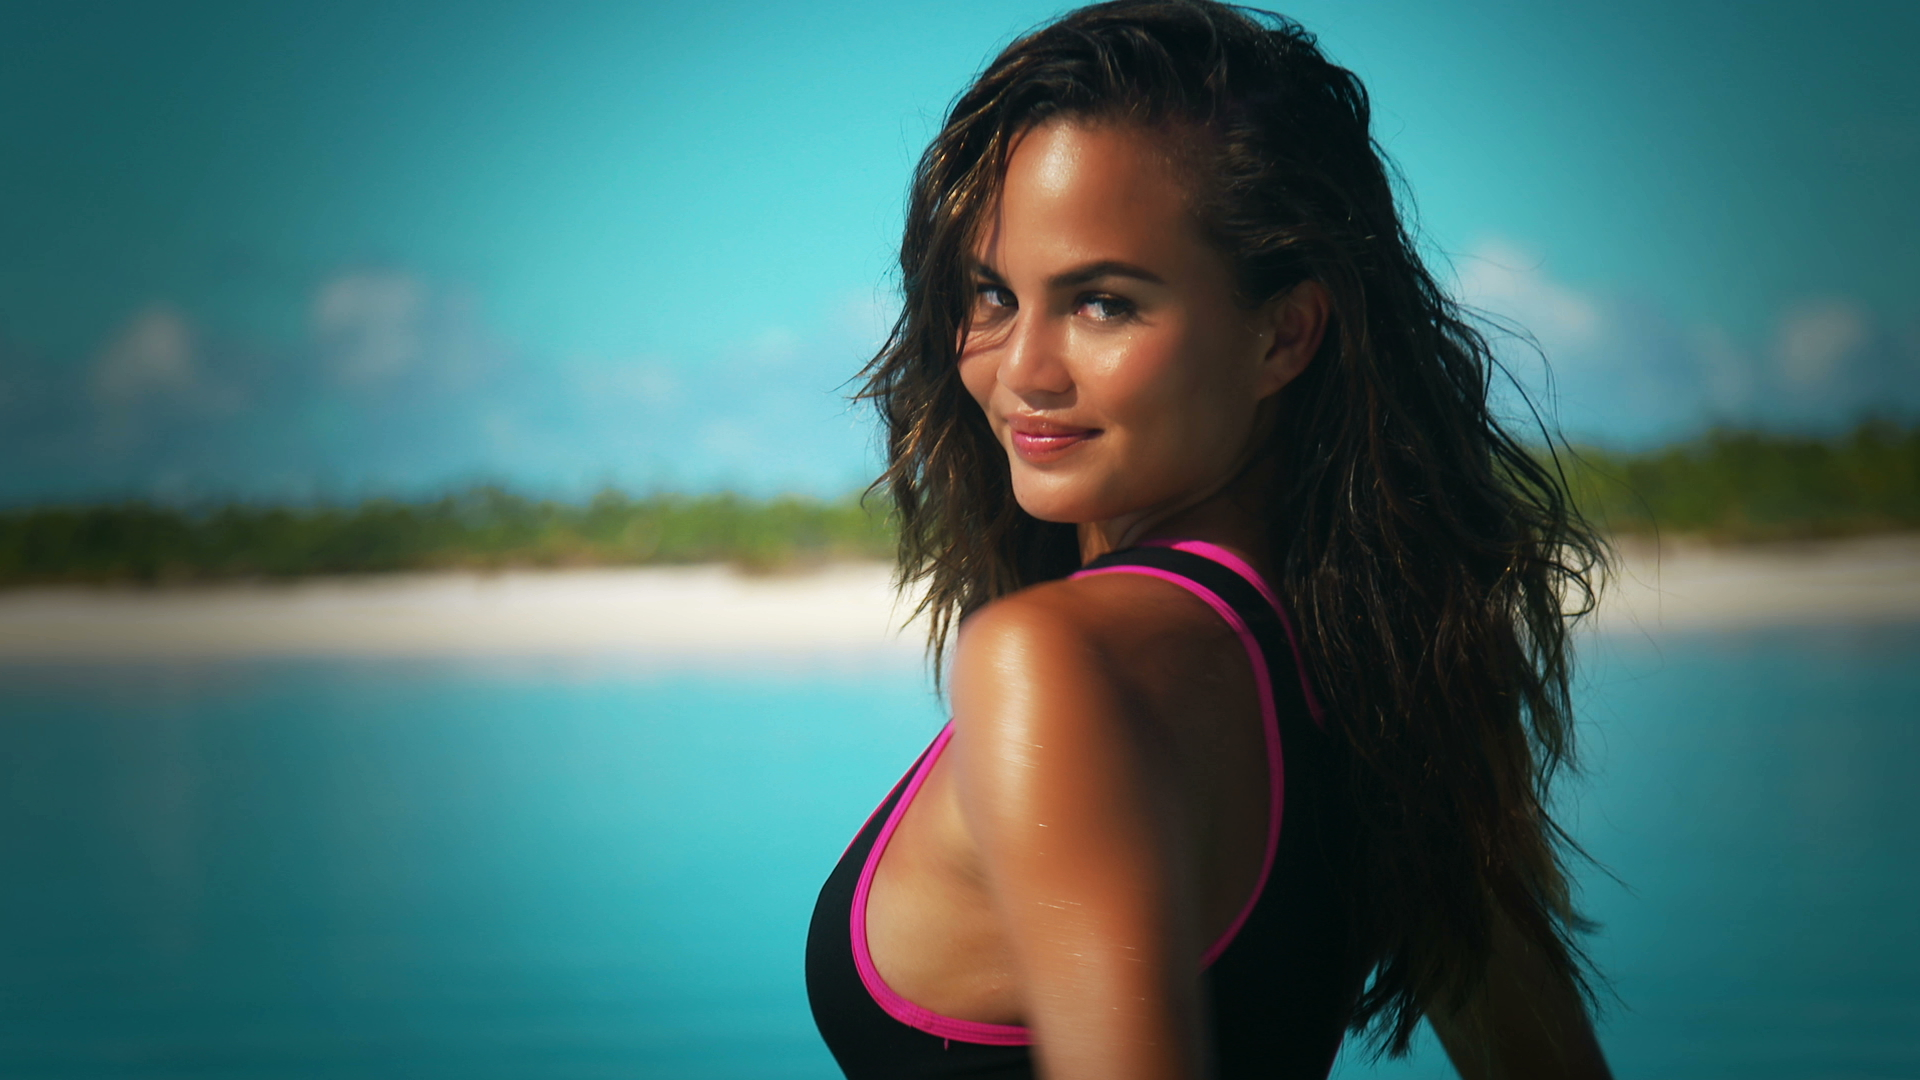 Chrissy Teigen Actress Hotel Transylvania 3 Summer Vacation Chrissy Teigen was born on November 30 1985 in Delta Utah USA as Christine Diane Teigen She is an